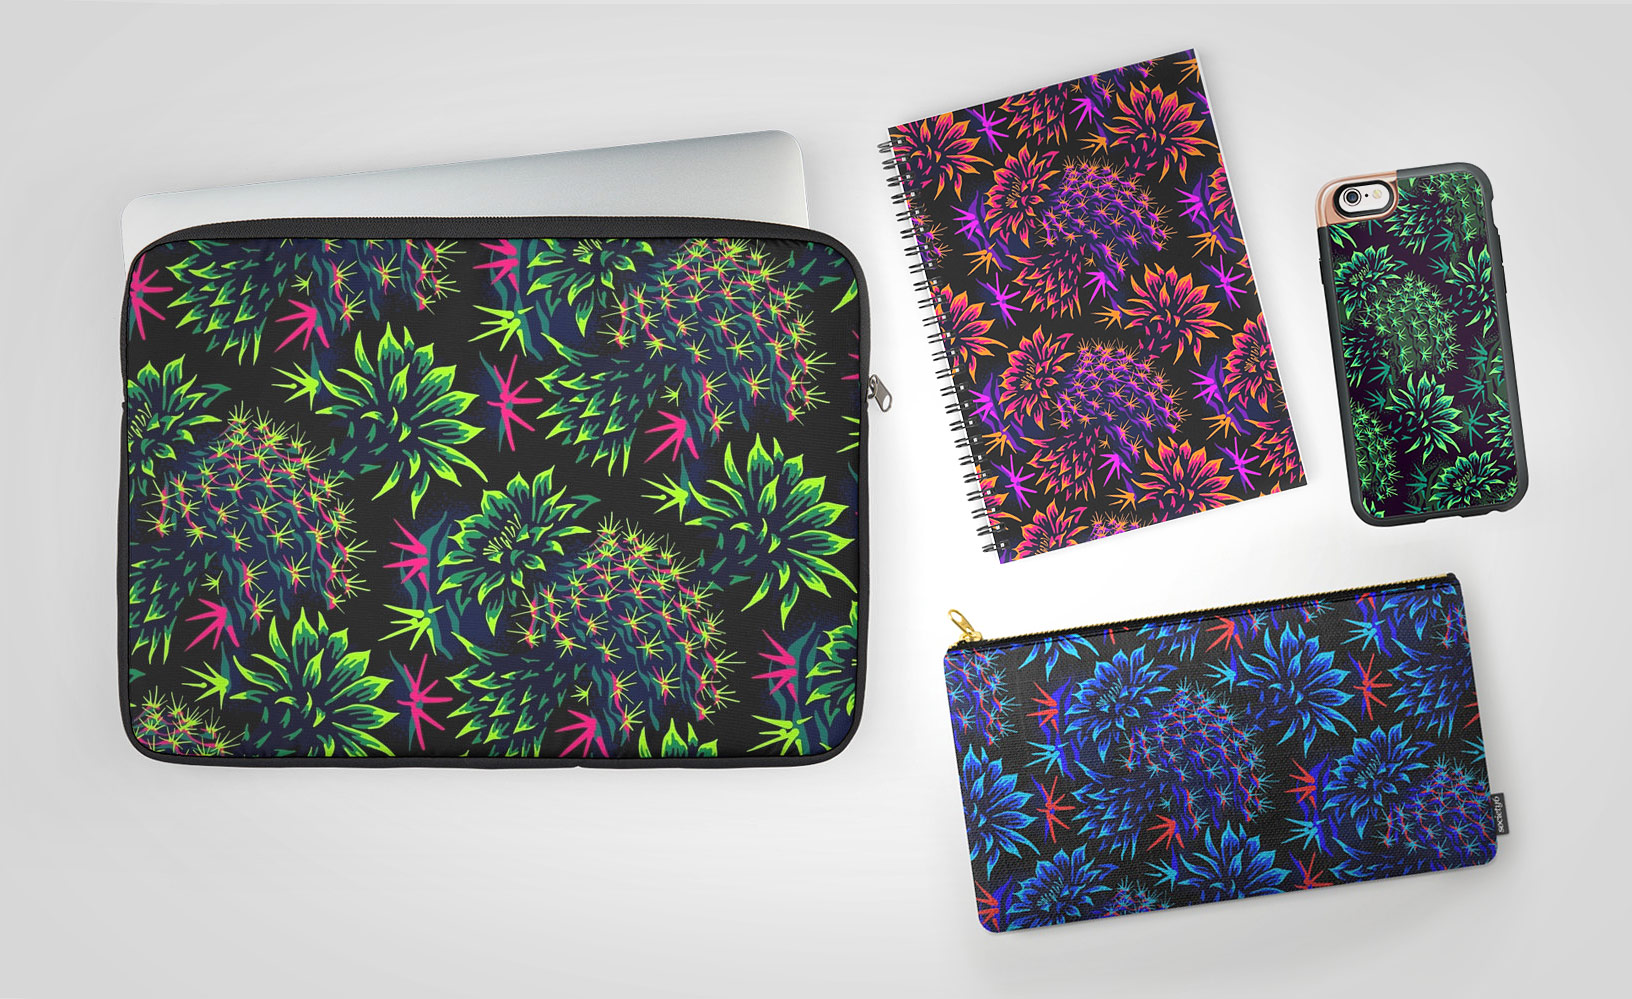 Cactus floral phone case, laptop sleeve, notebook by Andrea Stark